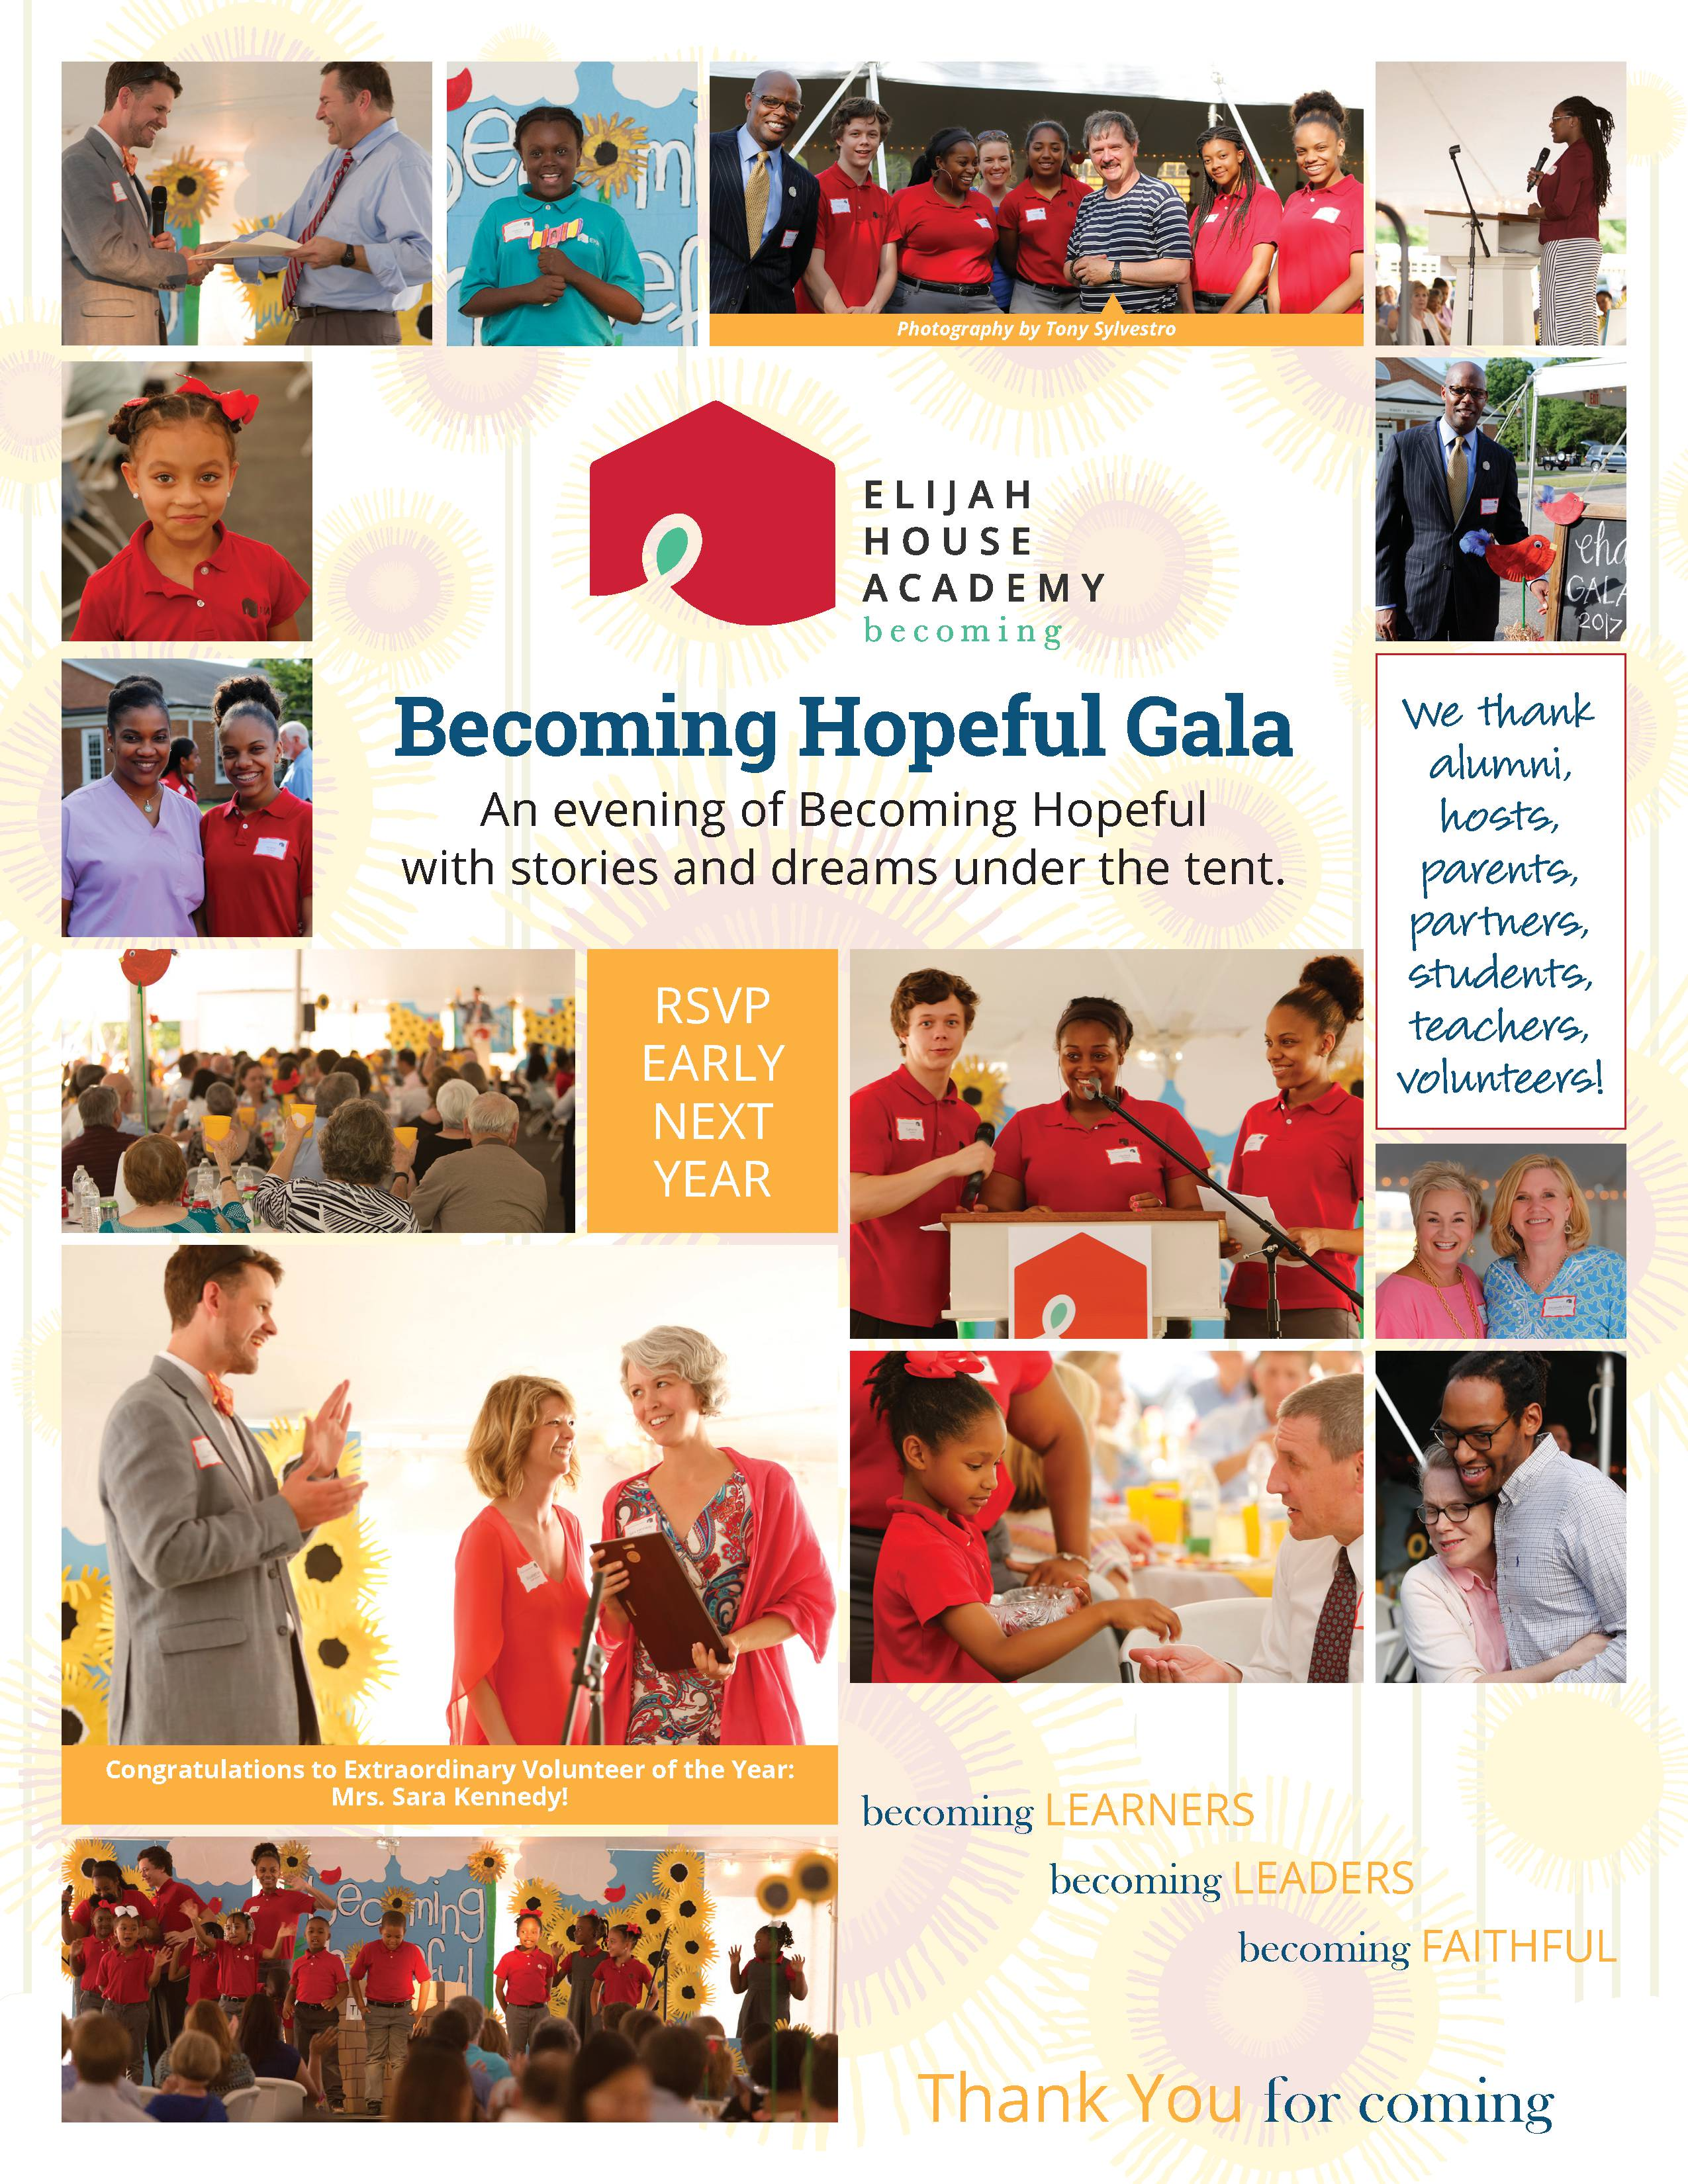 Becoming Hopeful Gala, Thank you, Scholarship Partners, Stories and Dreams under the tent